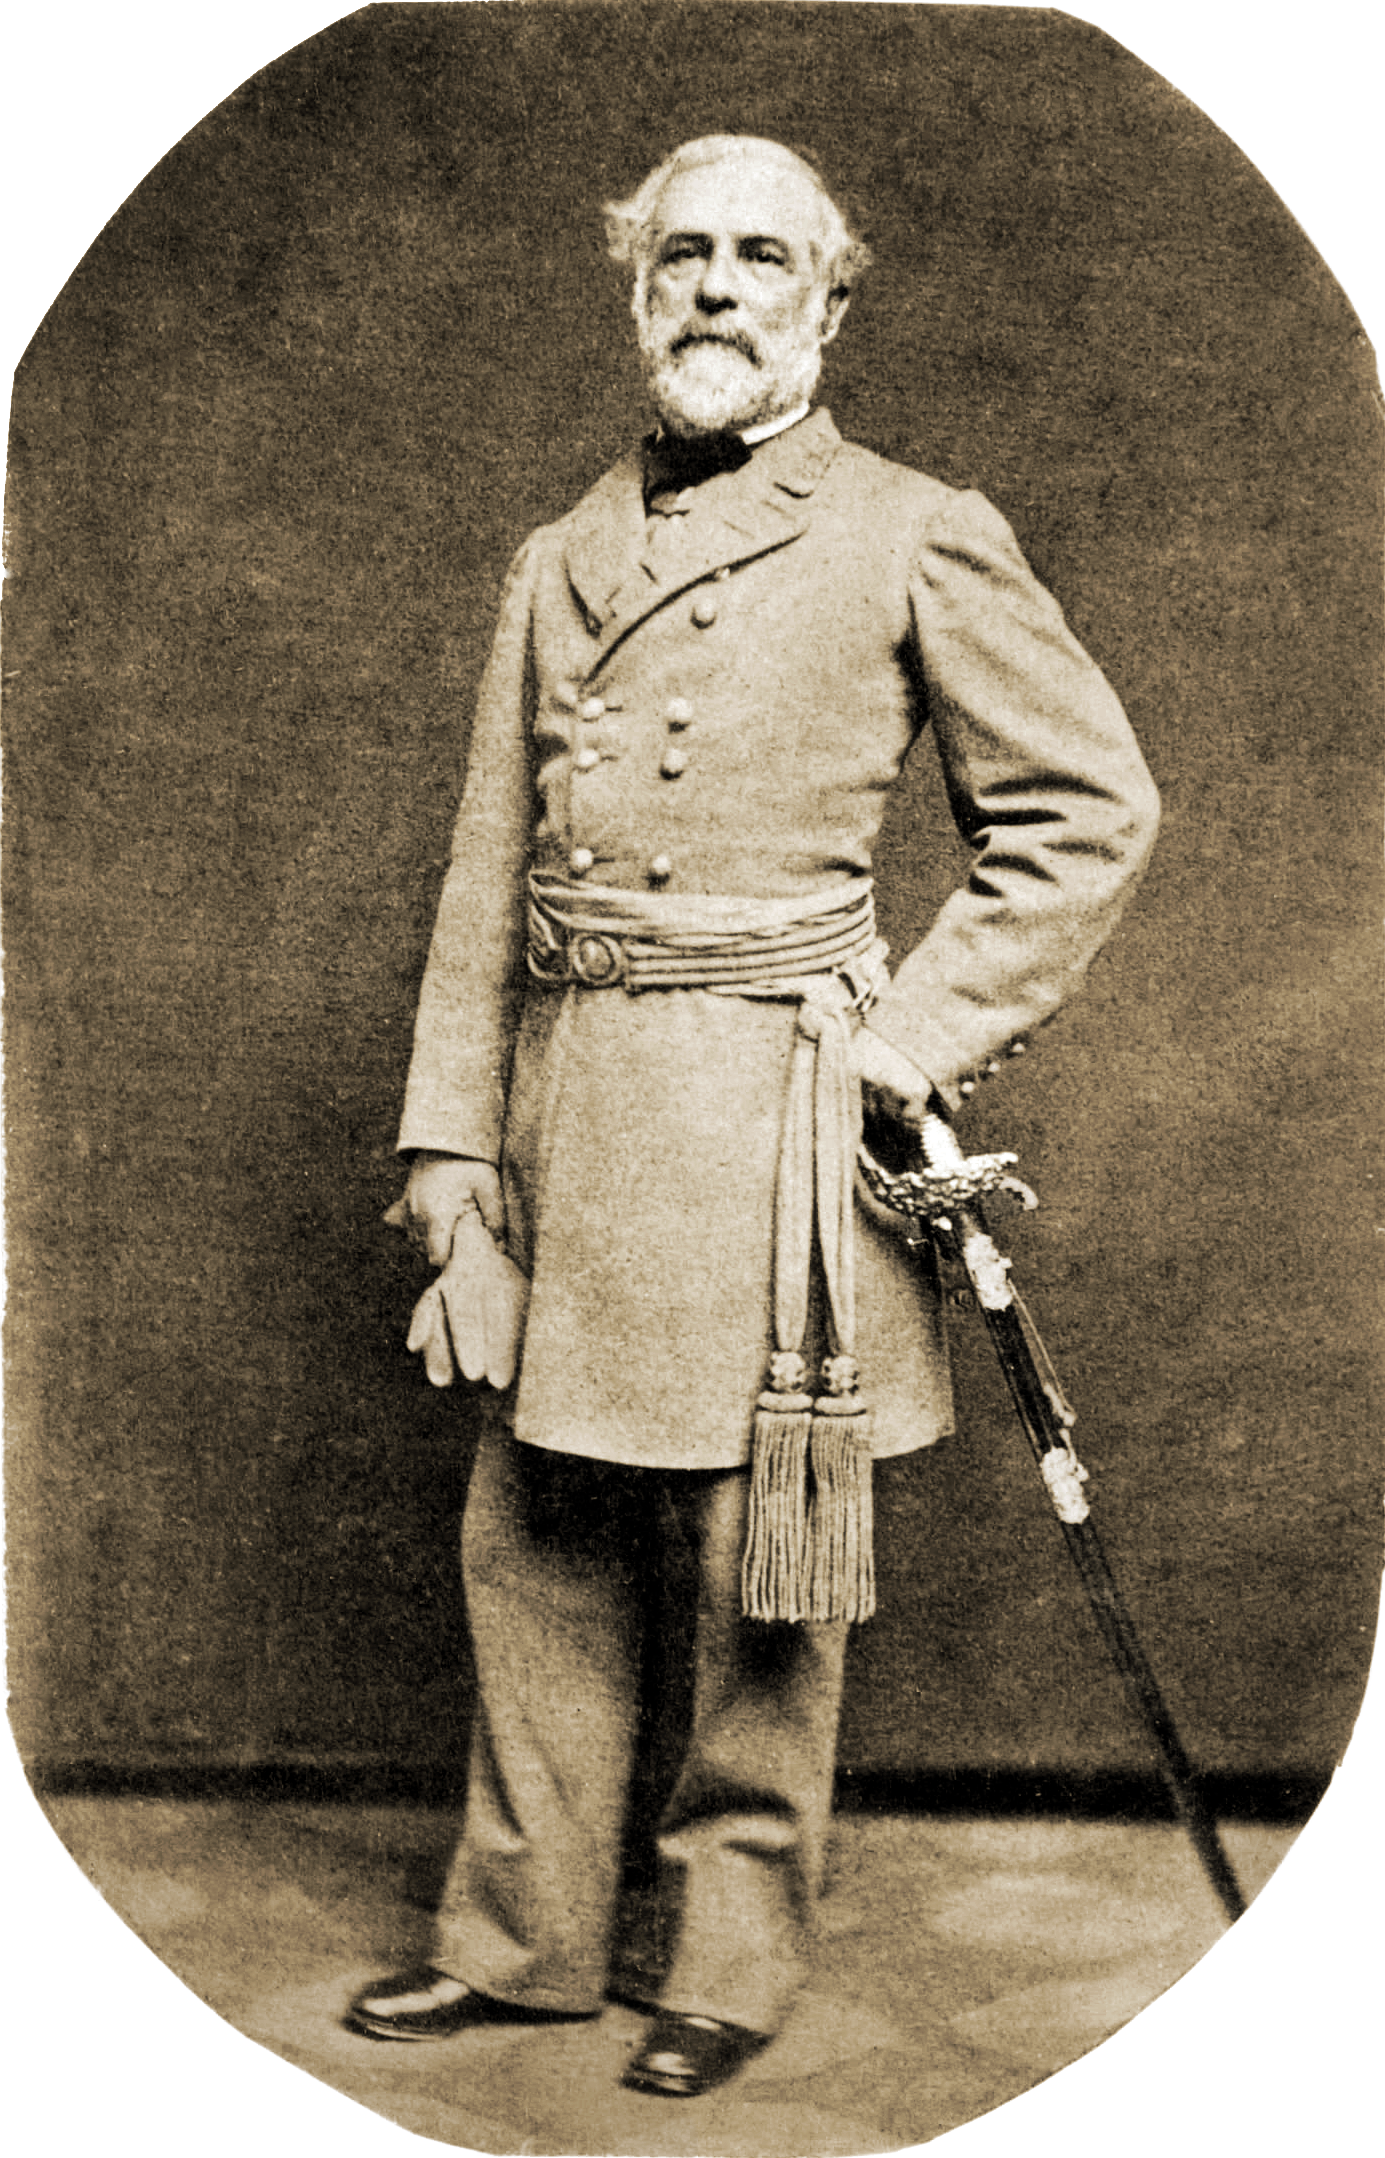 https://upload.wikimedia.org/wikipedia/commons/7/7e/Robert_E_Lee_in_1863.png